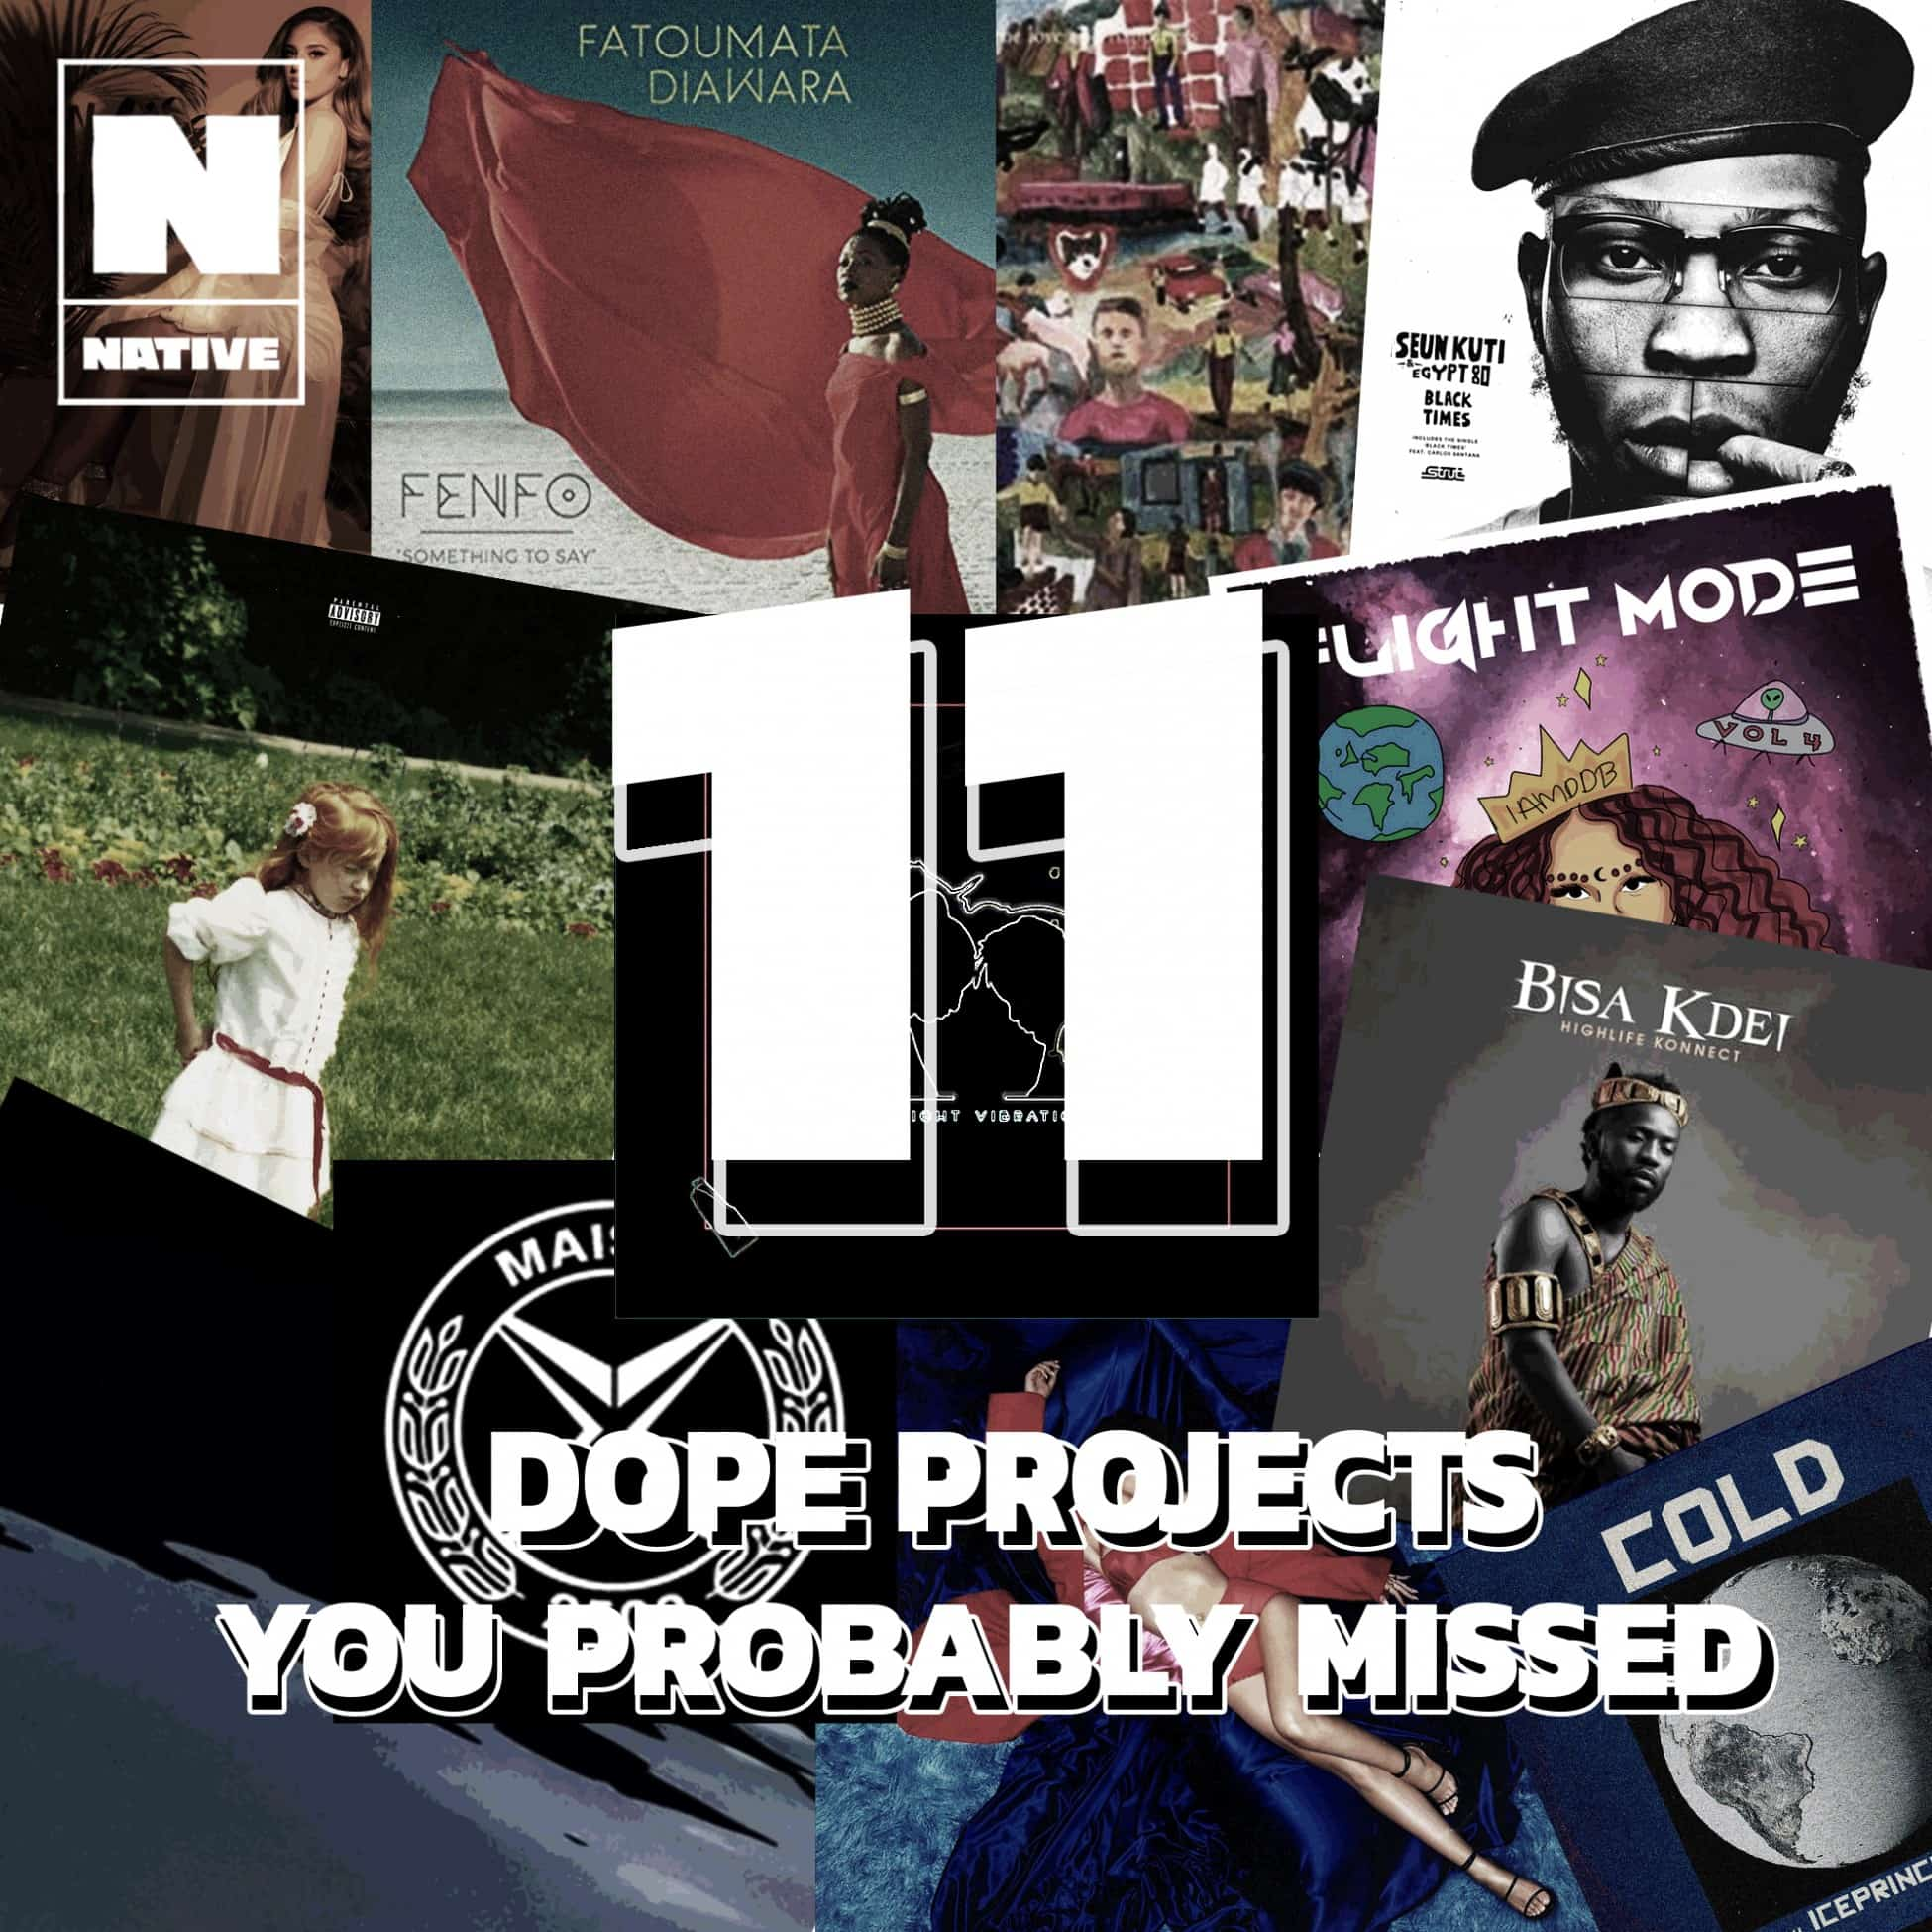 The NATIVE Presents: 11 dope projects you probably missed